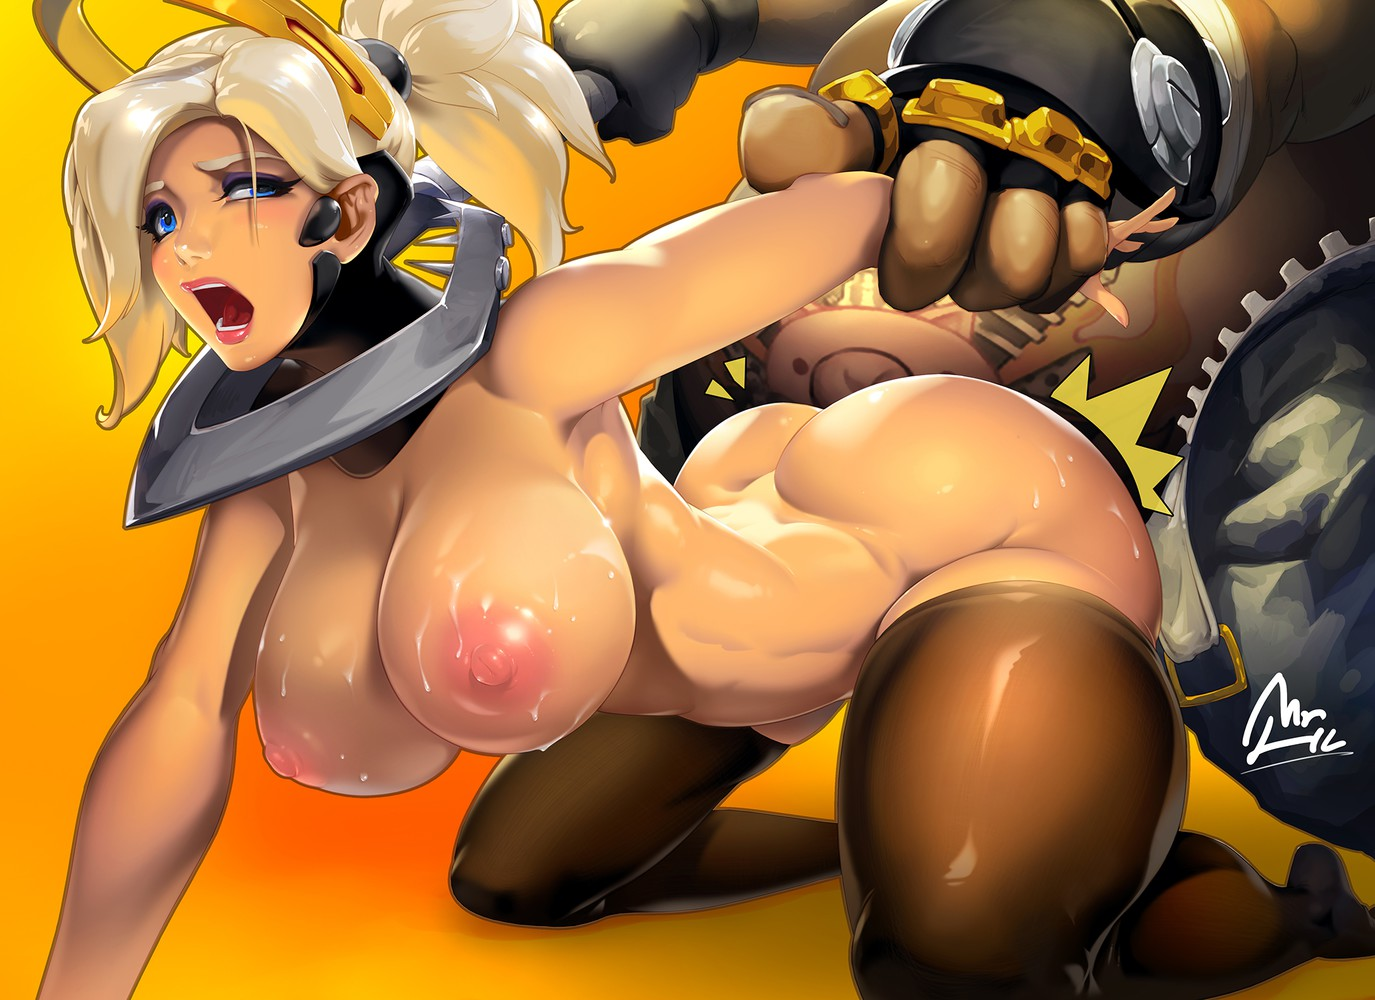 Big Tits Mercy Doggystyle Cartoon